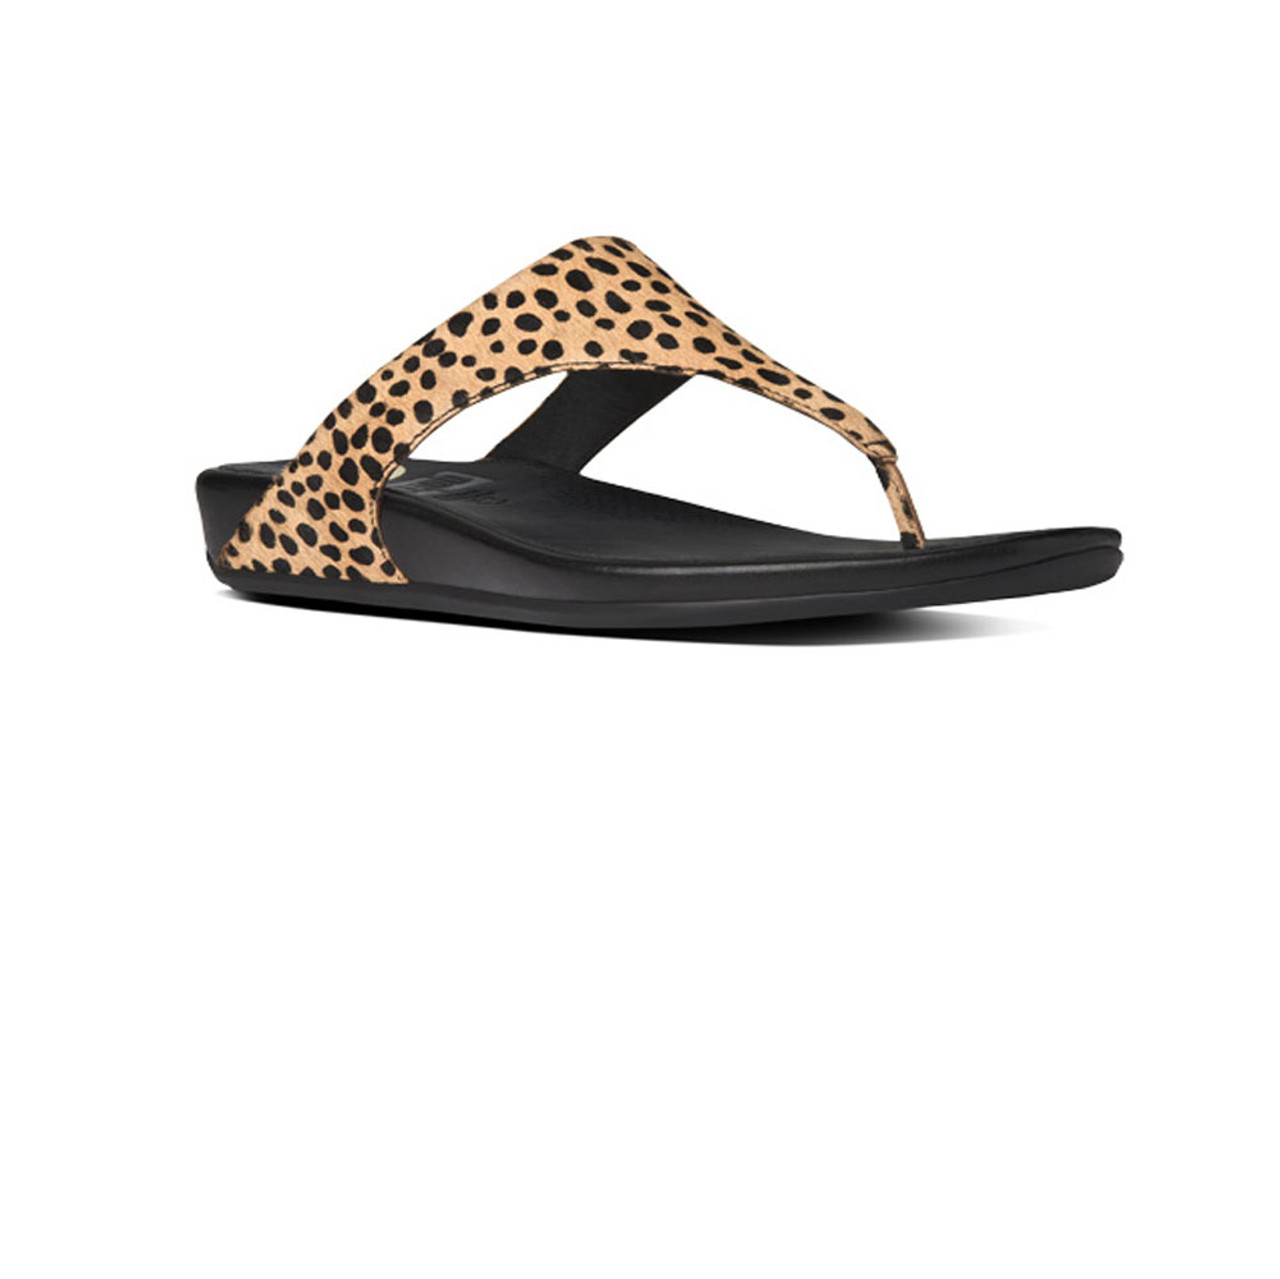 0ef5c30a518d1 Fitflop Women s Banda Thong Leopard - Shop now   Shoolu.com